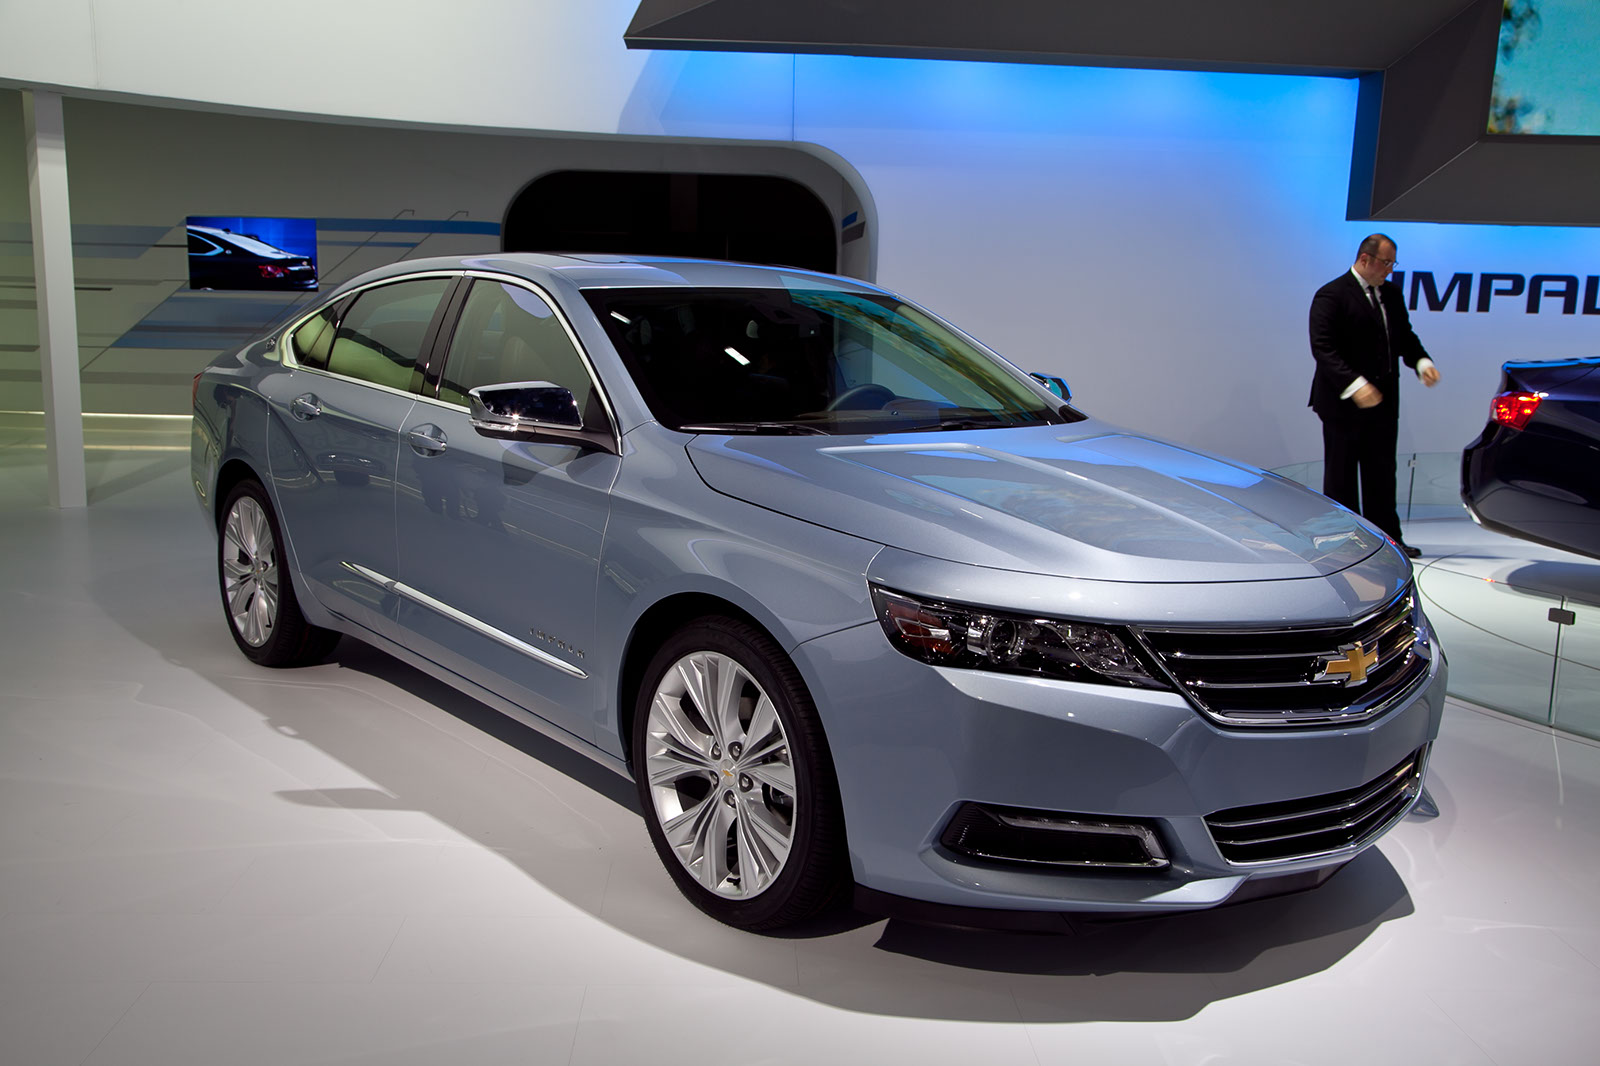 2014 - 2015 Chevrolet Impala Review - Top Speed